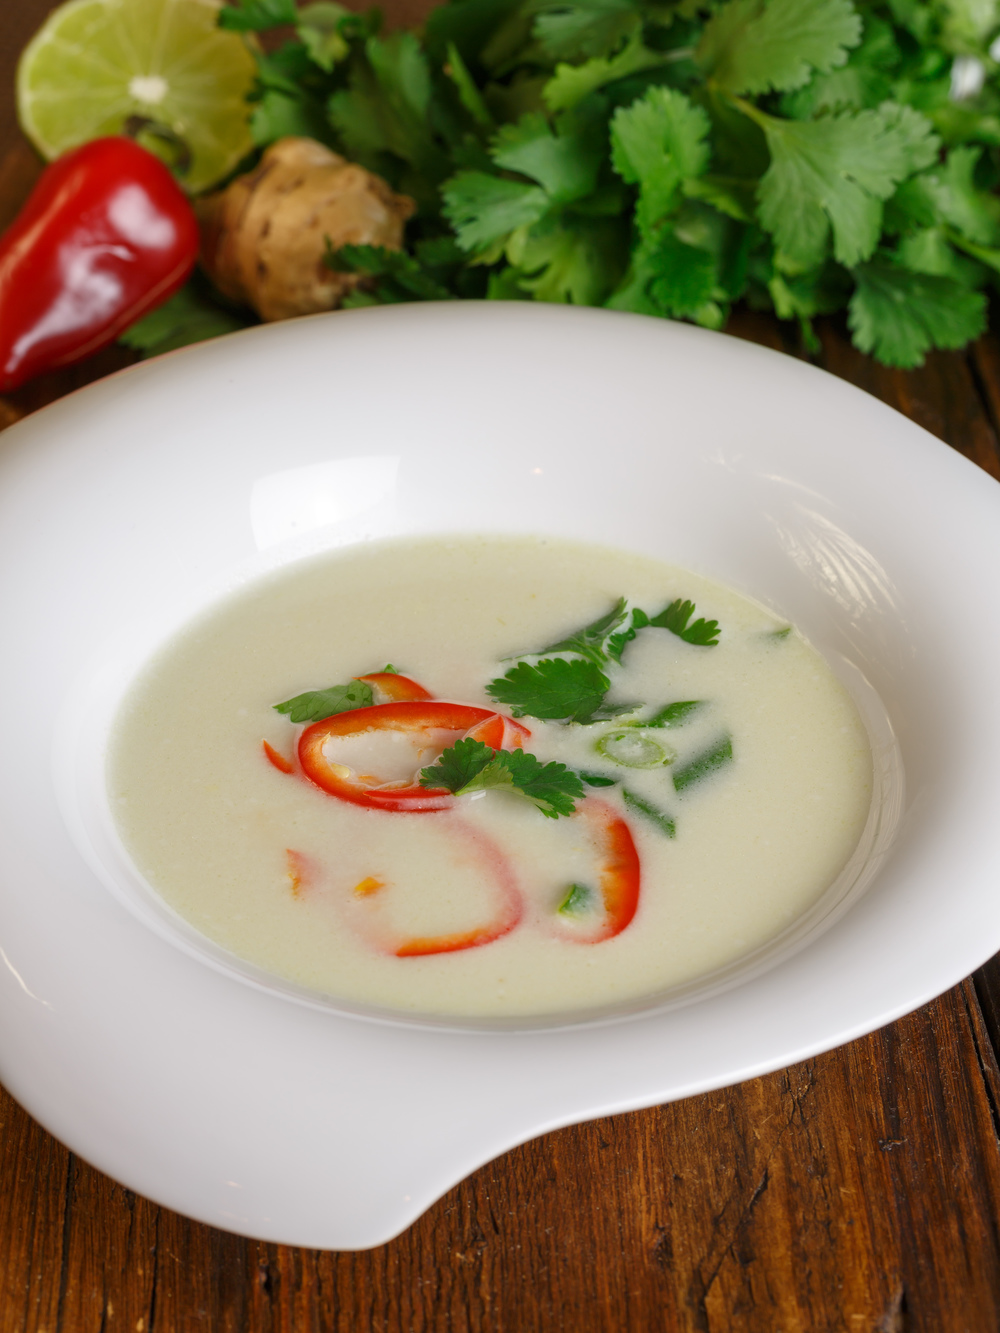 Tom Ka Gai - Coconut Chicken Soup my way